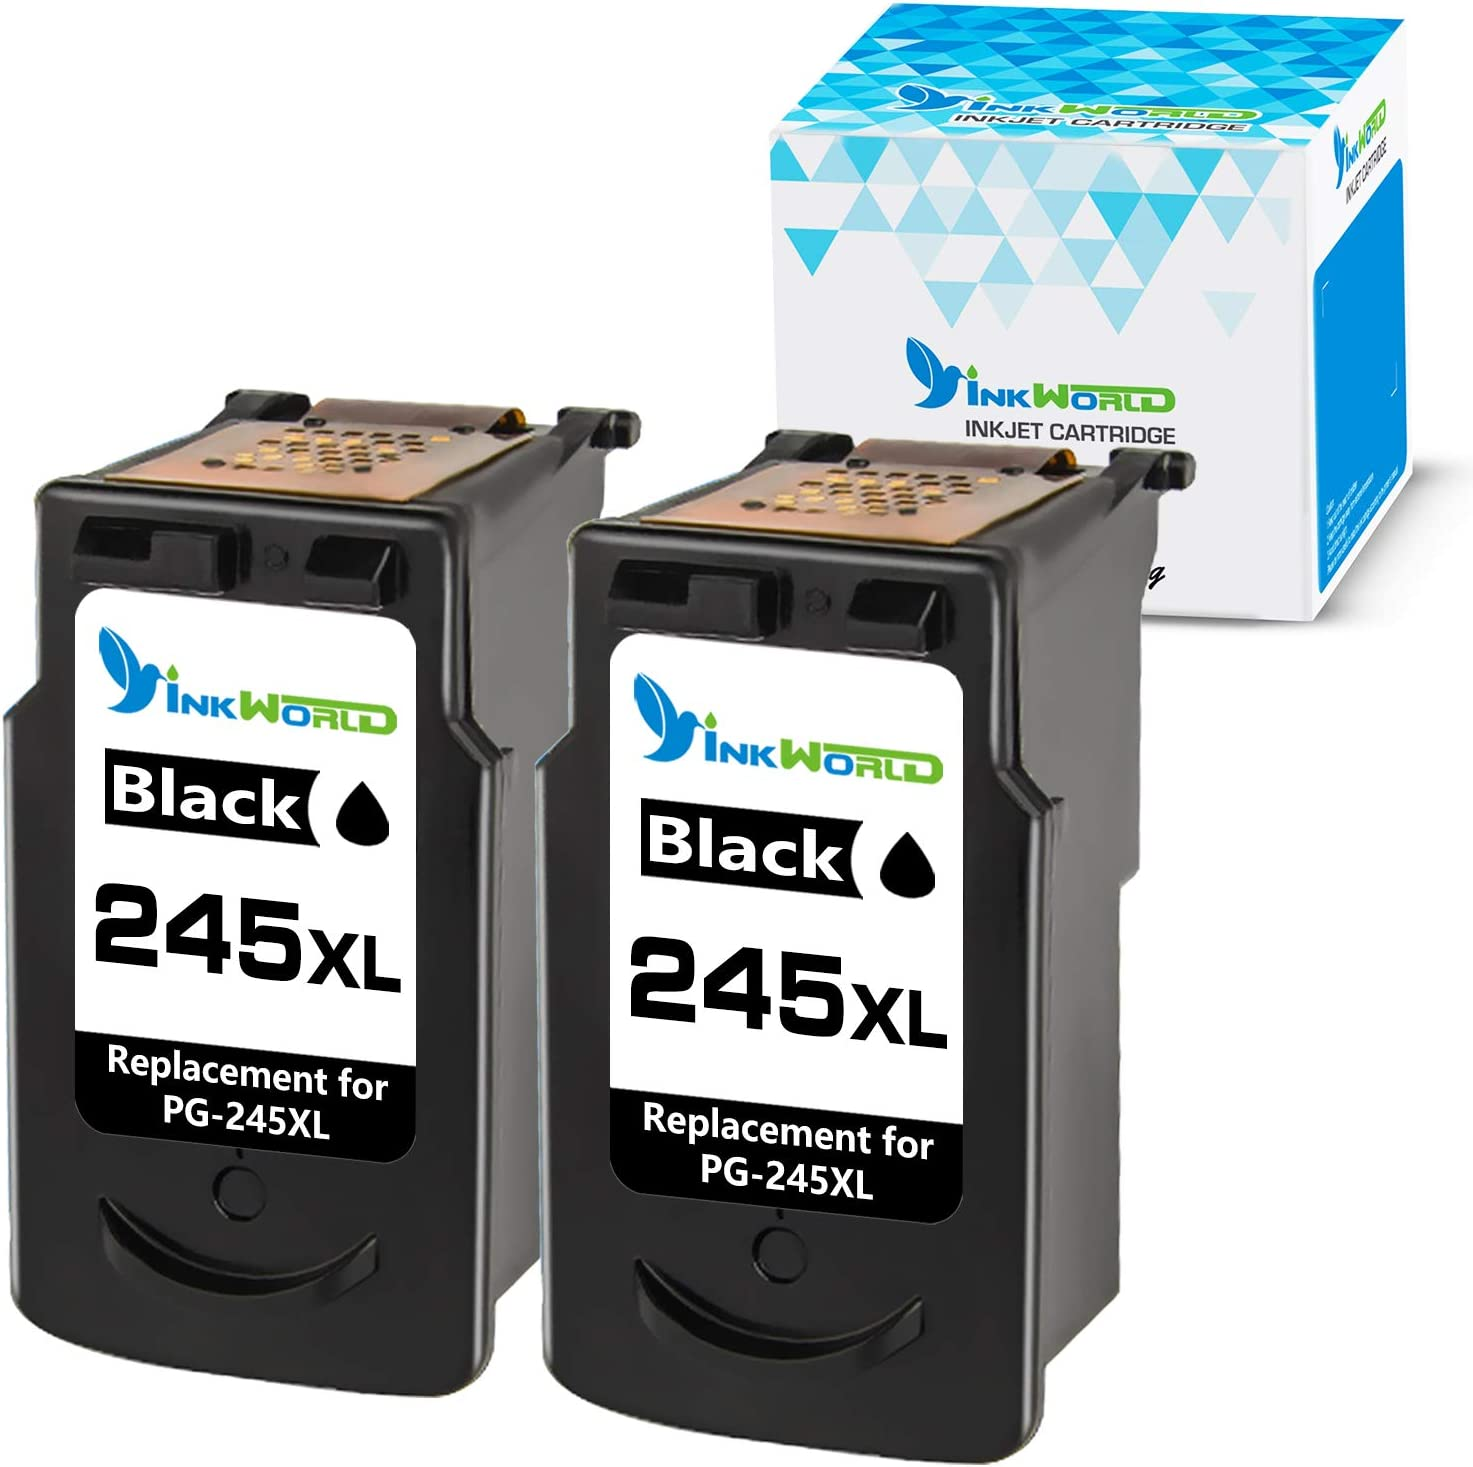 InkWorld Remanufactured Ink Cartridge Replacement for Canon PG-245XL 245 XL Use with Pixma MG3022 MG2522 TR4520 TR4522 MG2922 MG2920 TS202 MX492 MX490 iP2820 TS302 MG2520 MG2525 Printer (2 Black)